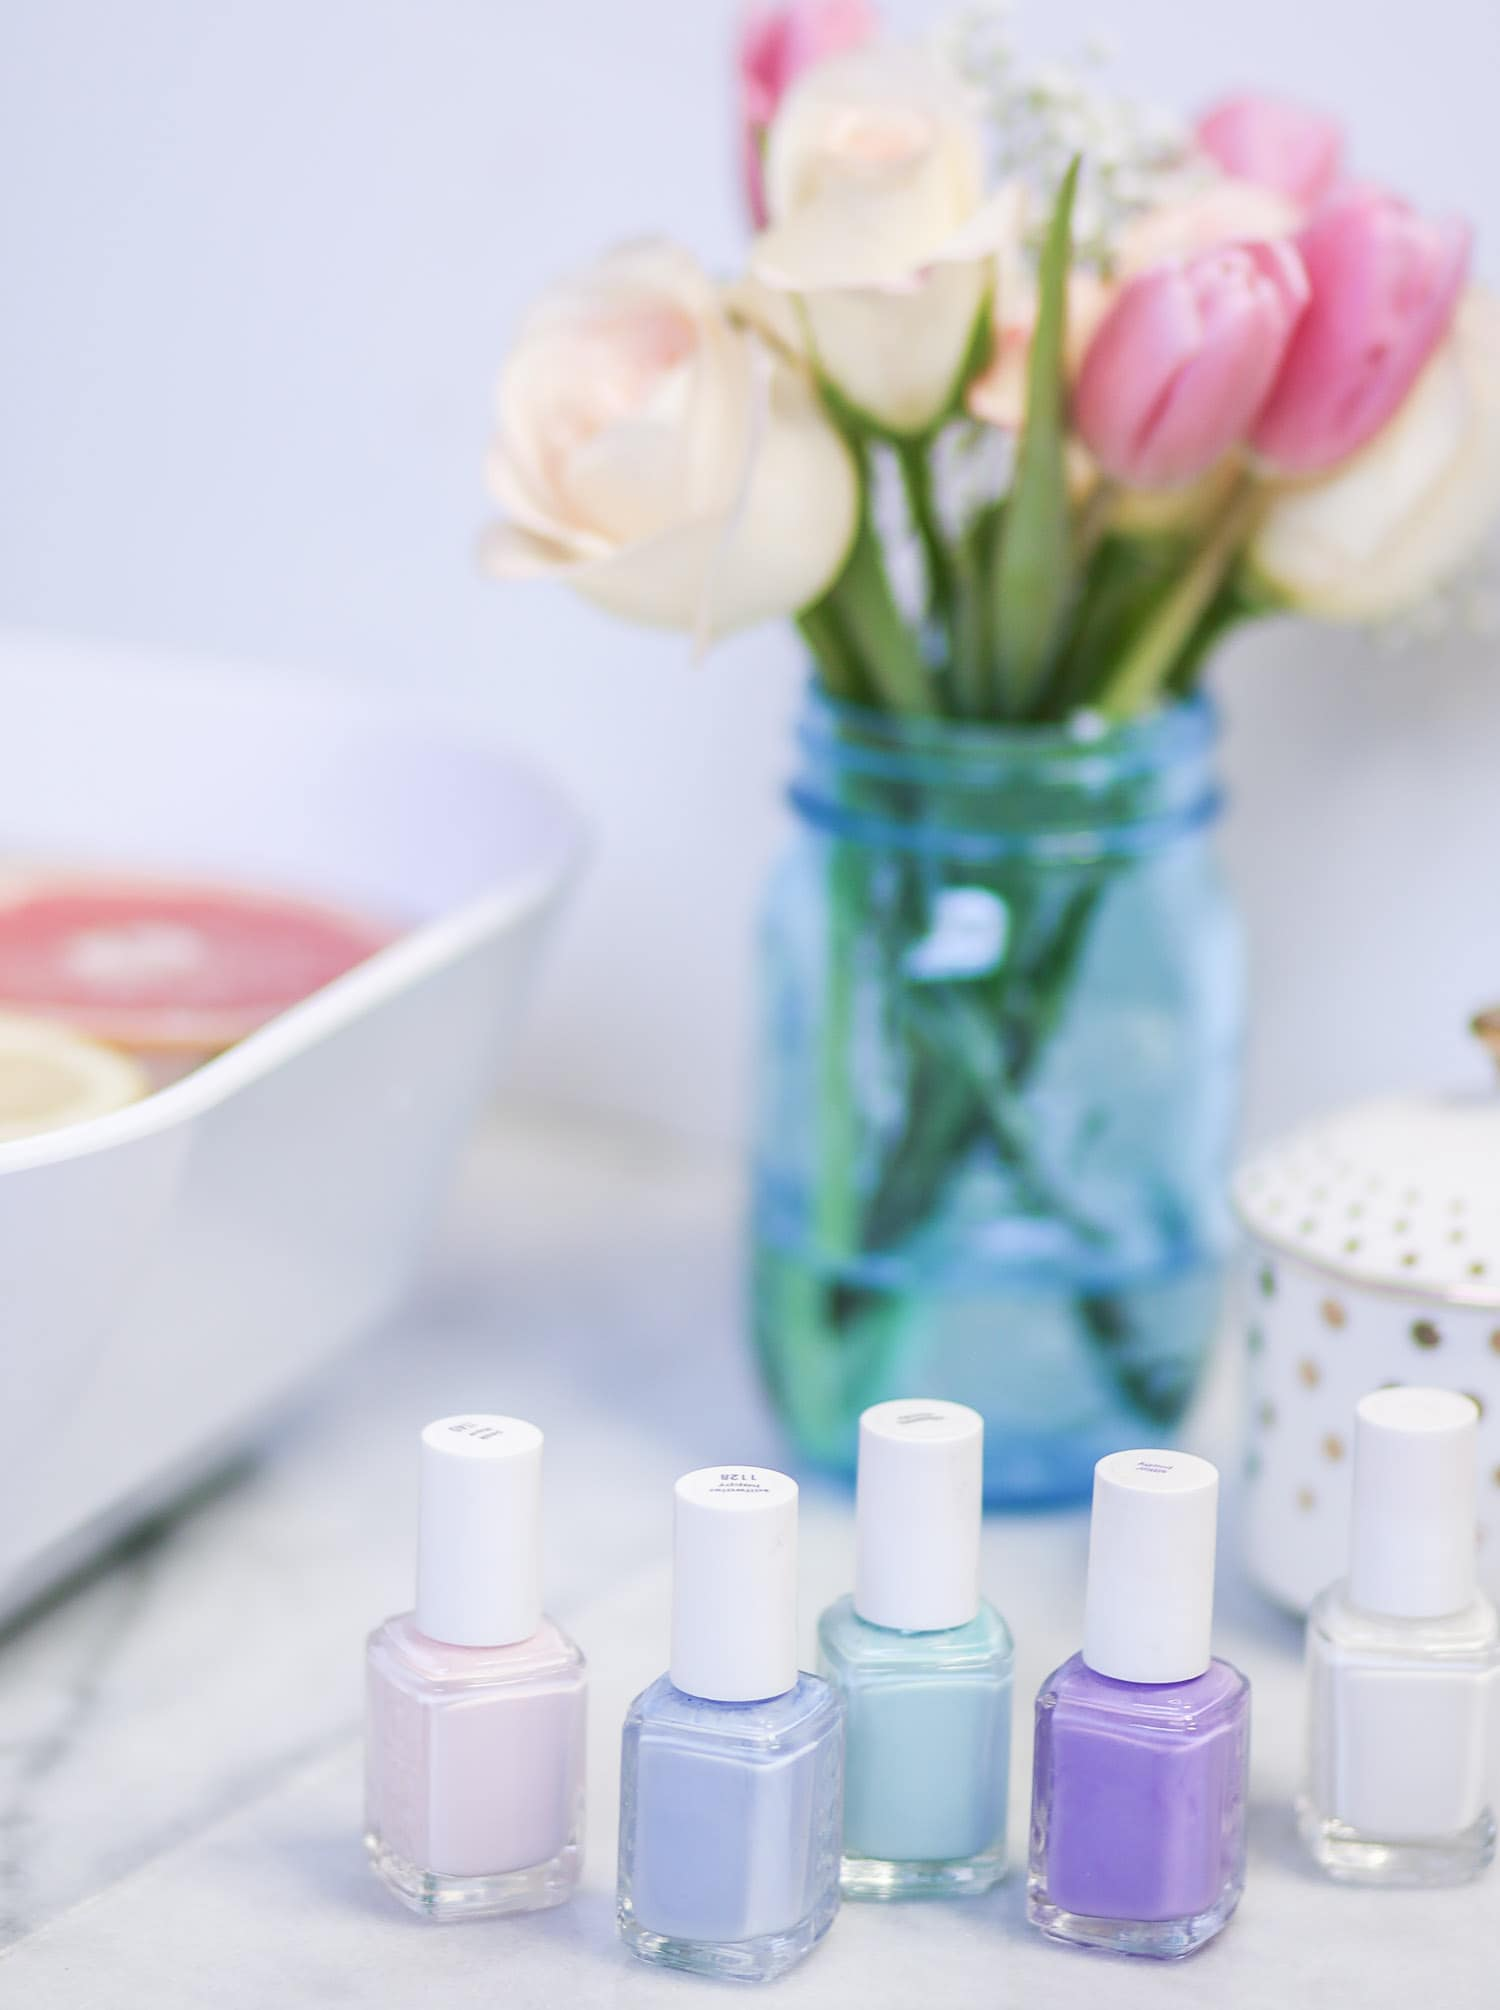 Learn how to create a luxurious DIY spa night at home. Ashley Brooke from ashleybrookenicholas.com is sharing her favorite DIY beauty treatment recipes, including a relaxing citrus and mint hand and foot soak. It's the perfect way to soften hands and feet before painting your nails with a pastel Essie nail polish!